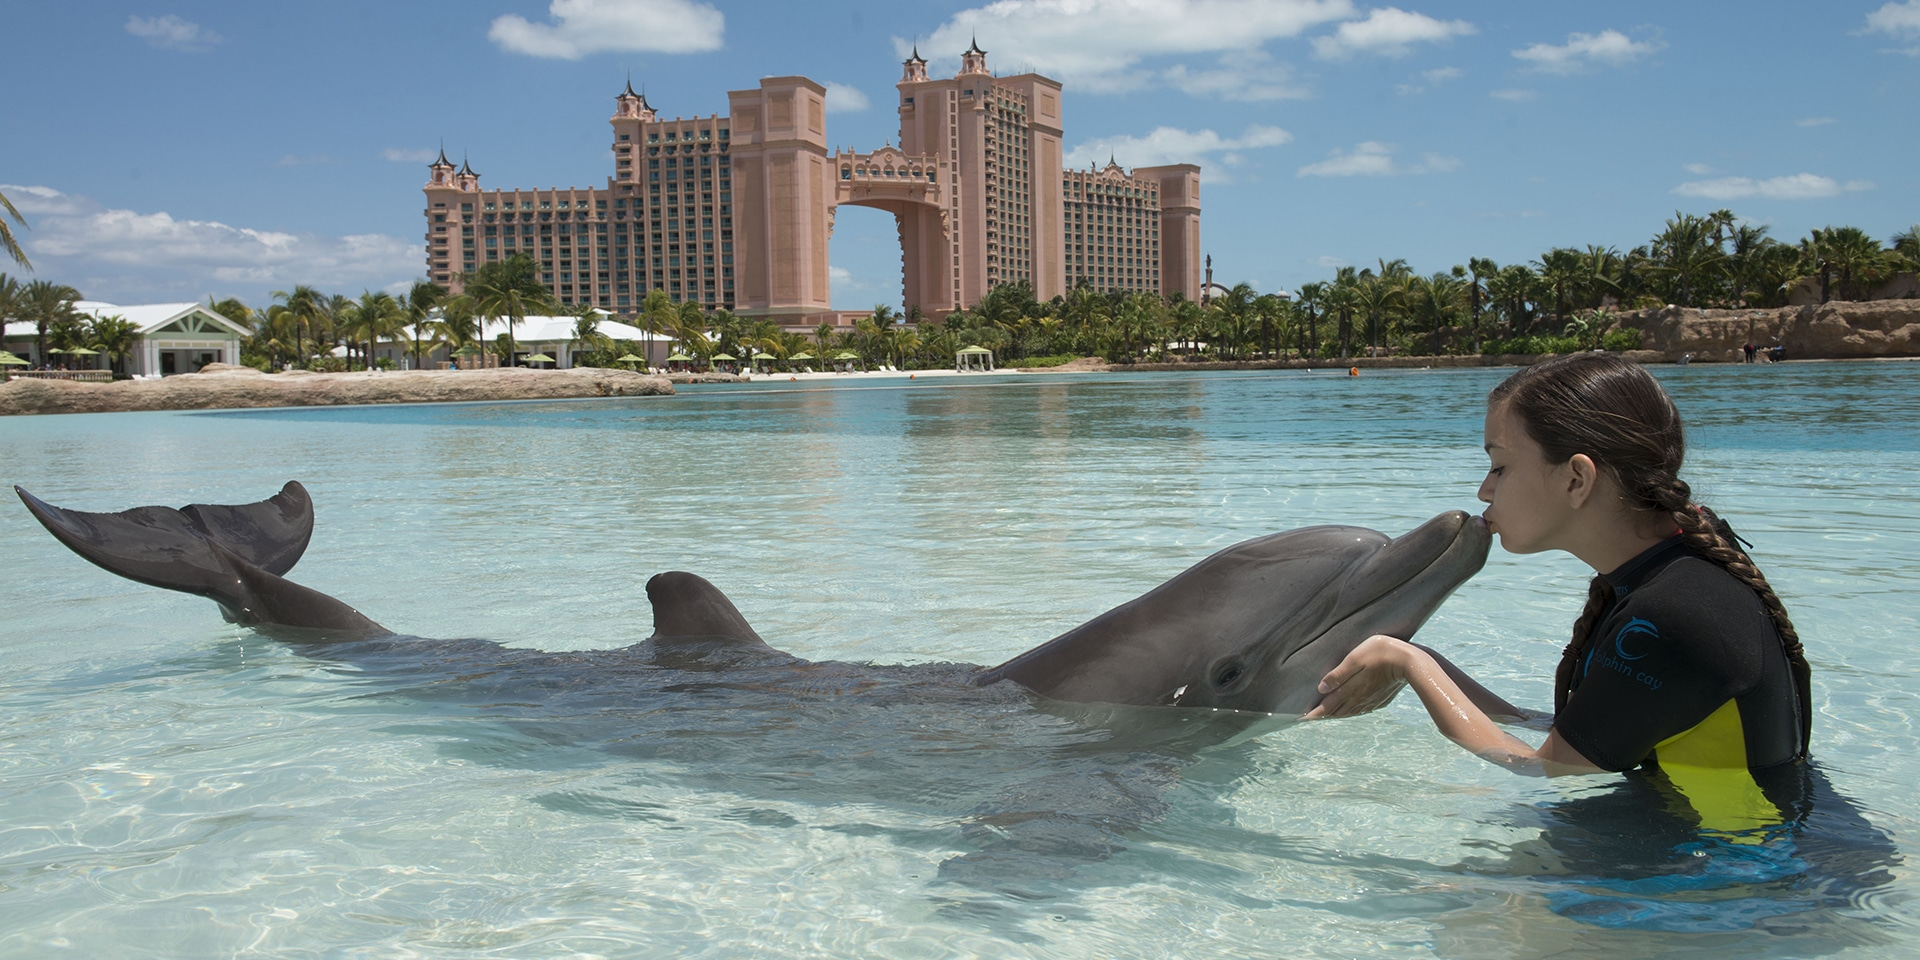 Kiss A Dolphin Or Just Enjoy The Picturesque Beaches At Atlantis Resort In Bahamas Photo Marriott International